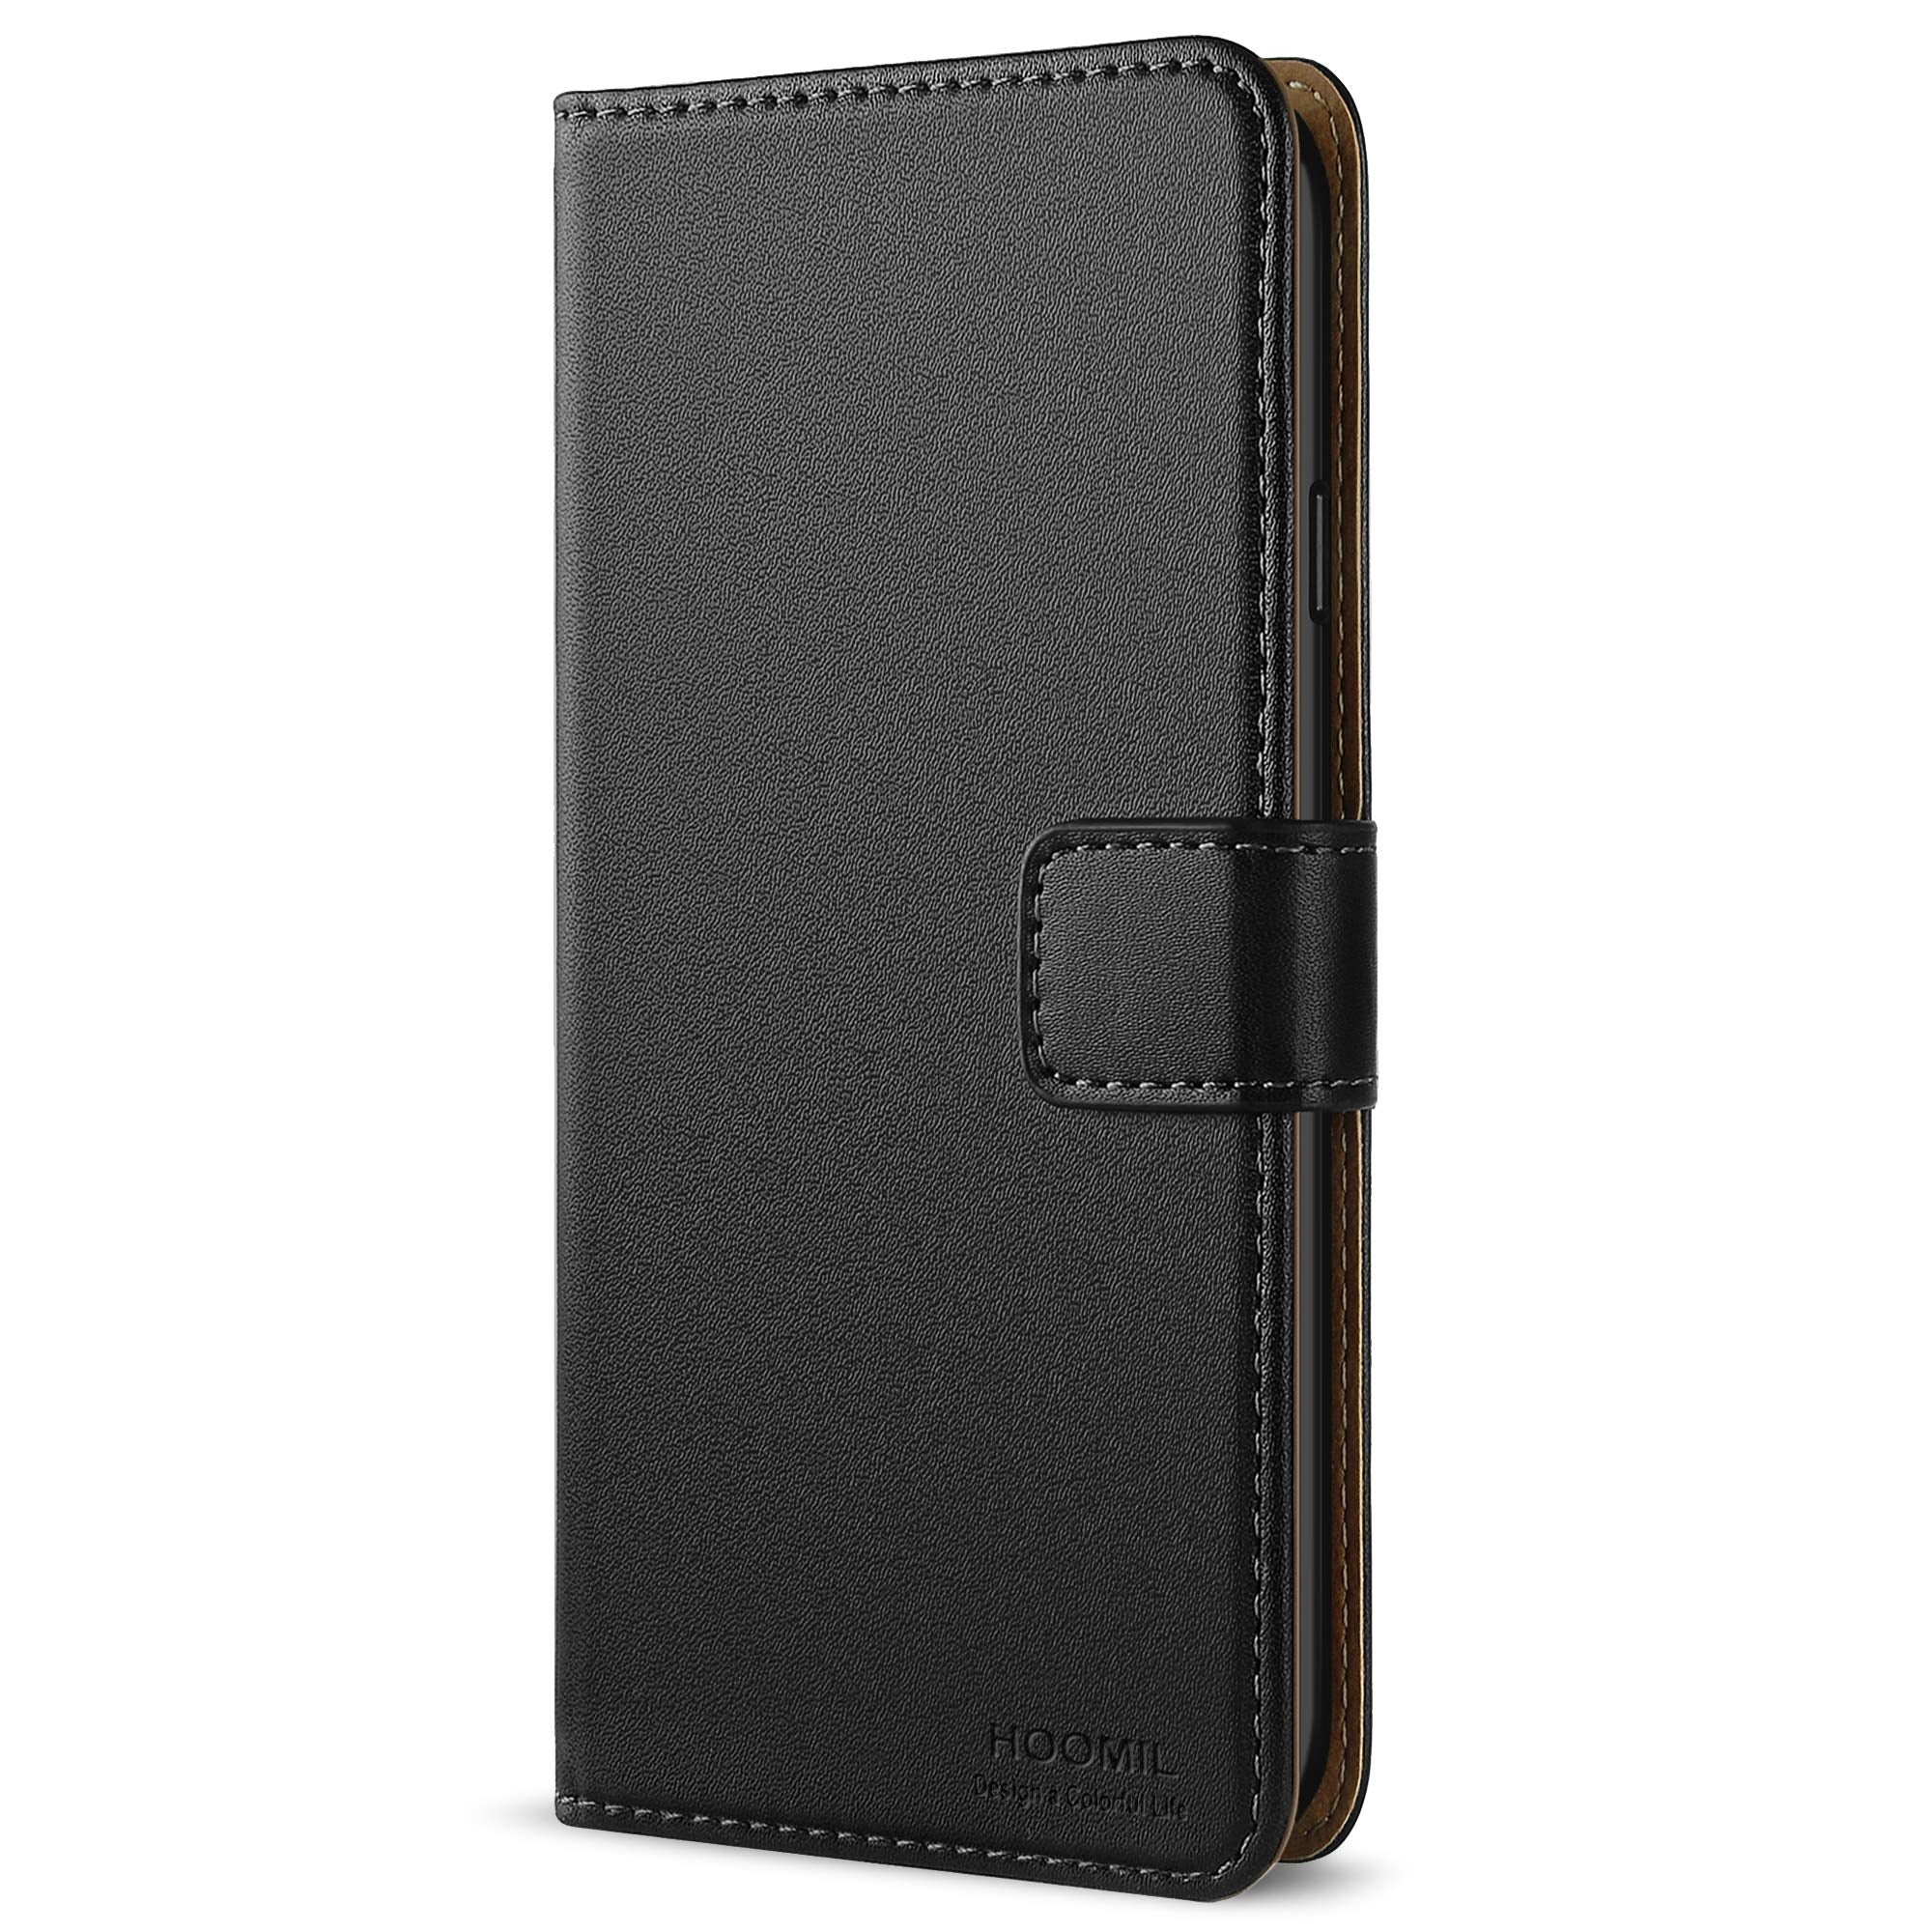 reputable site 66243 142d6 HOOMIL iPhone 6 Case Premium Leather Case for Apple iPhone 6/6S Phone Cover  (Black)